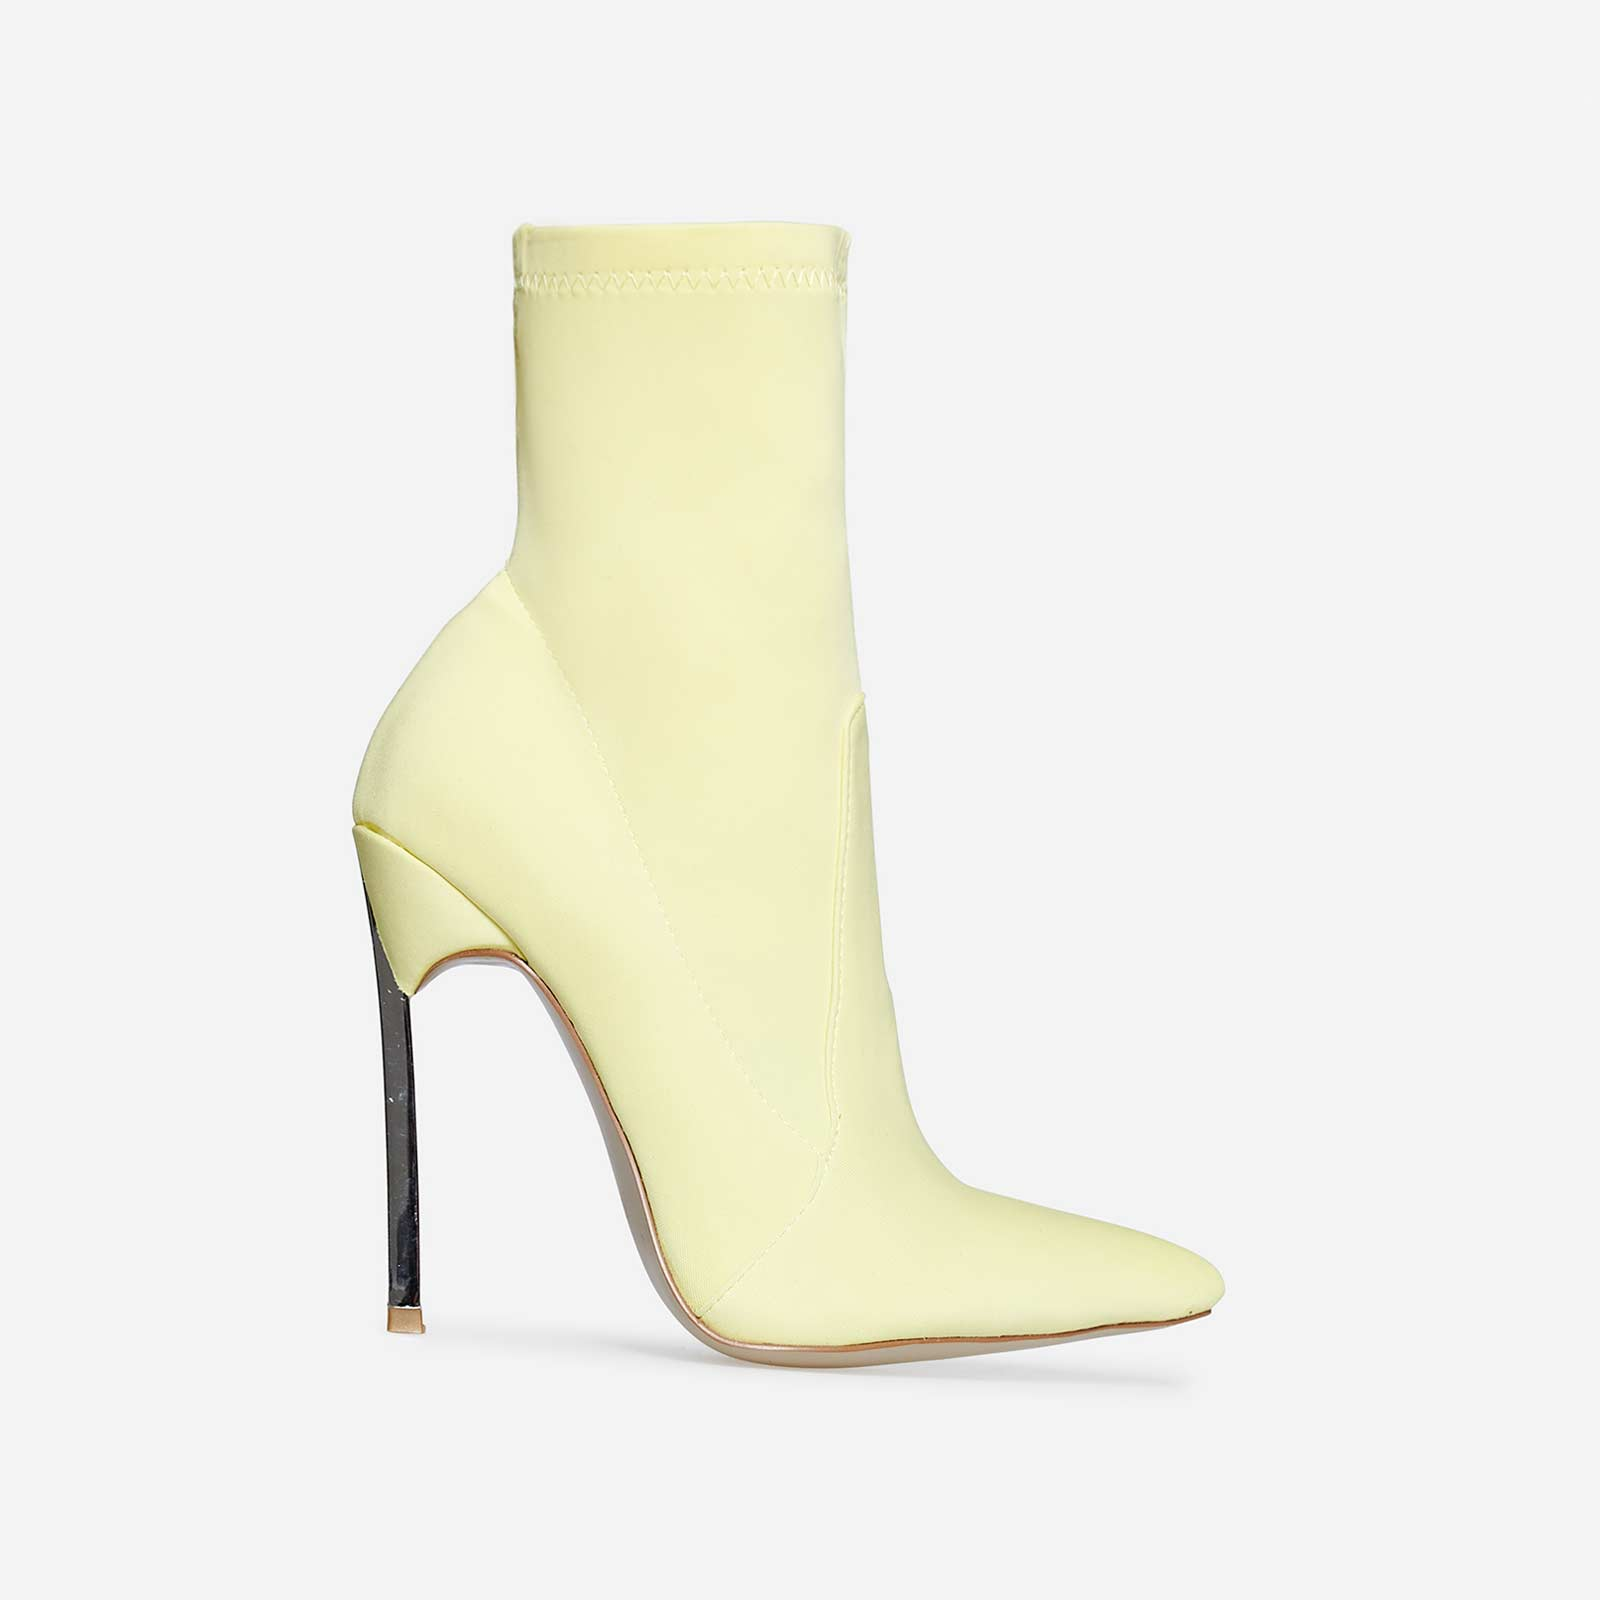 Ava Skinny Heel Pointed Toe Sock Boot In Lemon Yellow Lycra